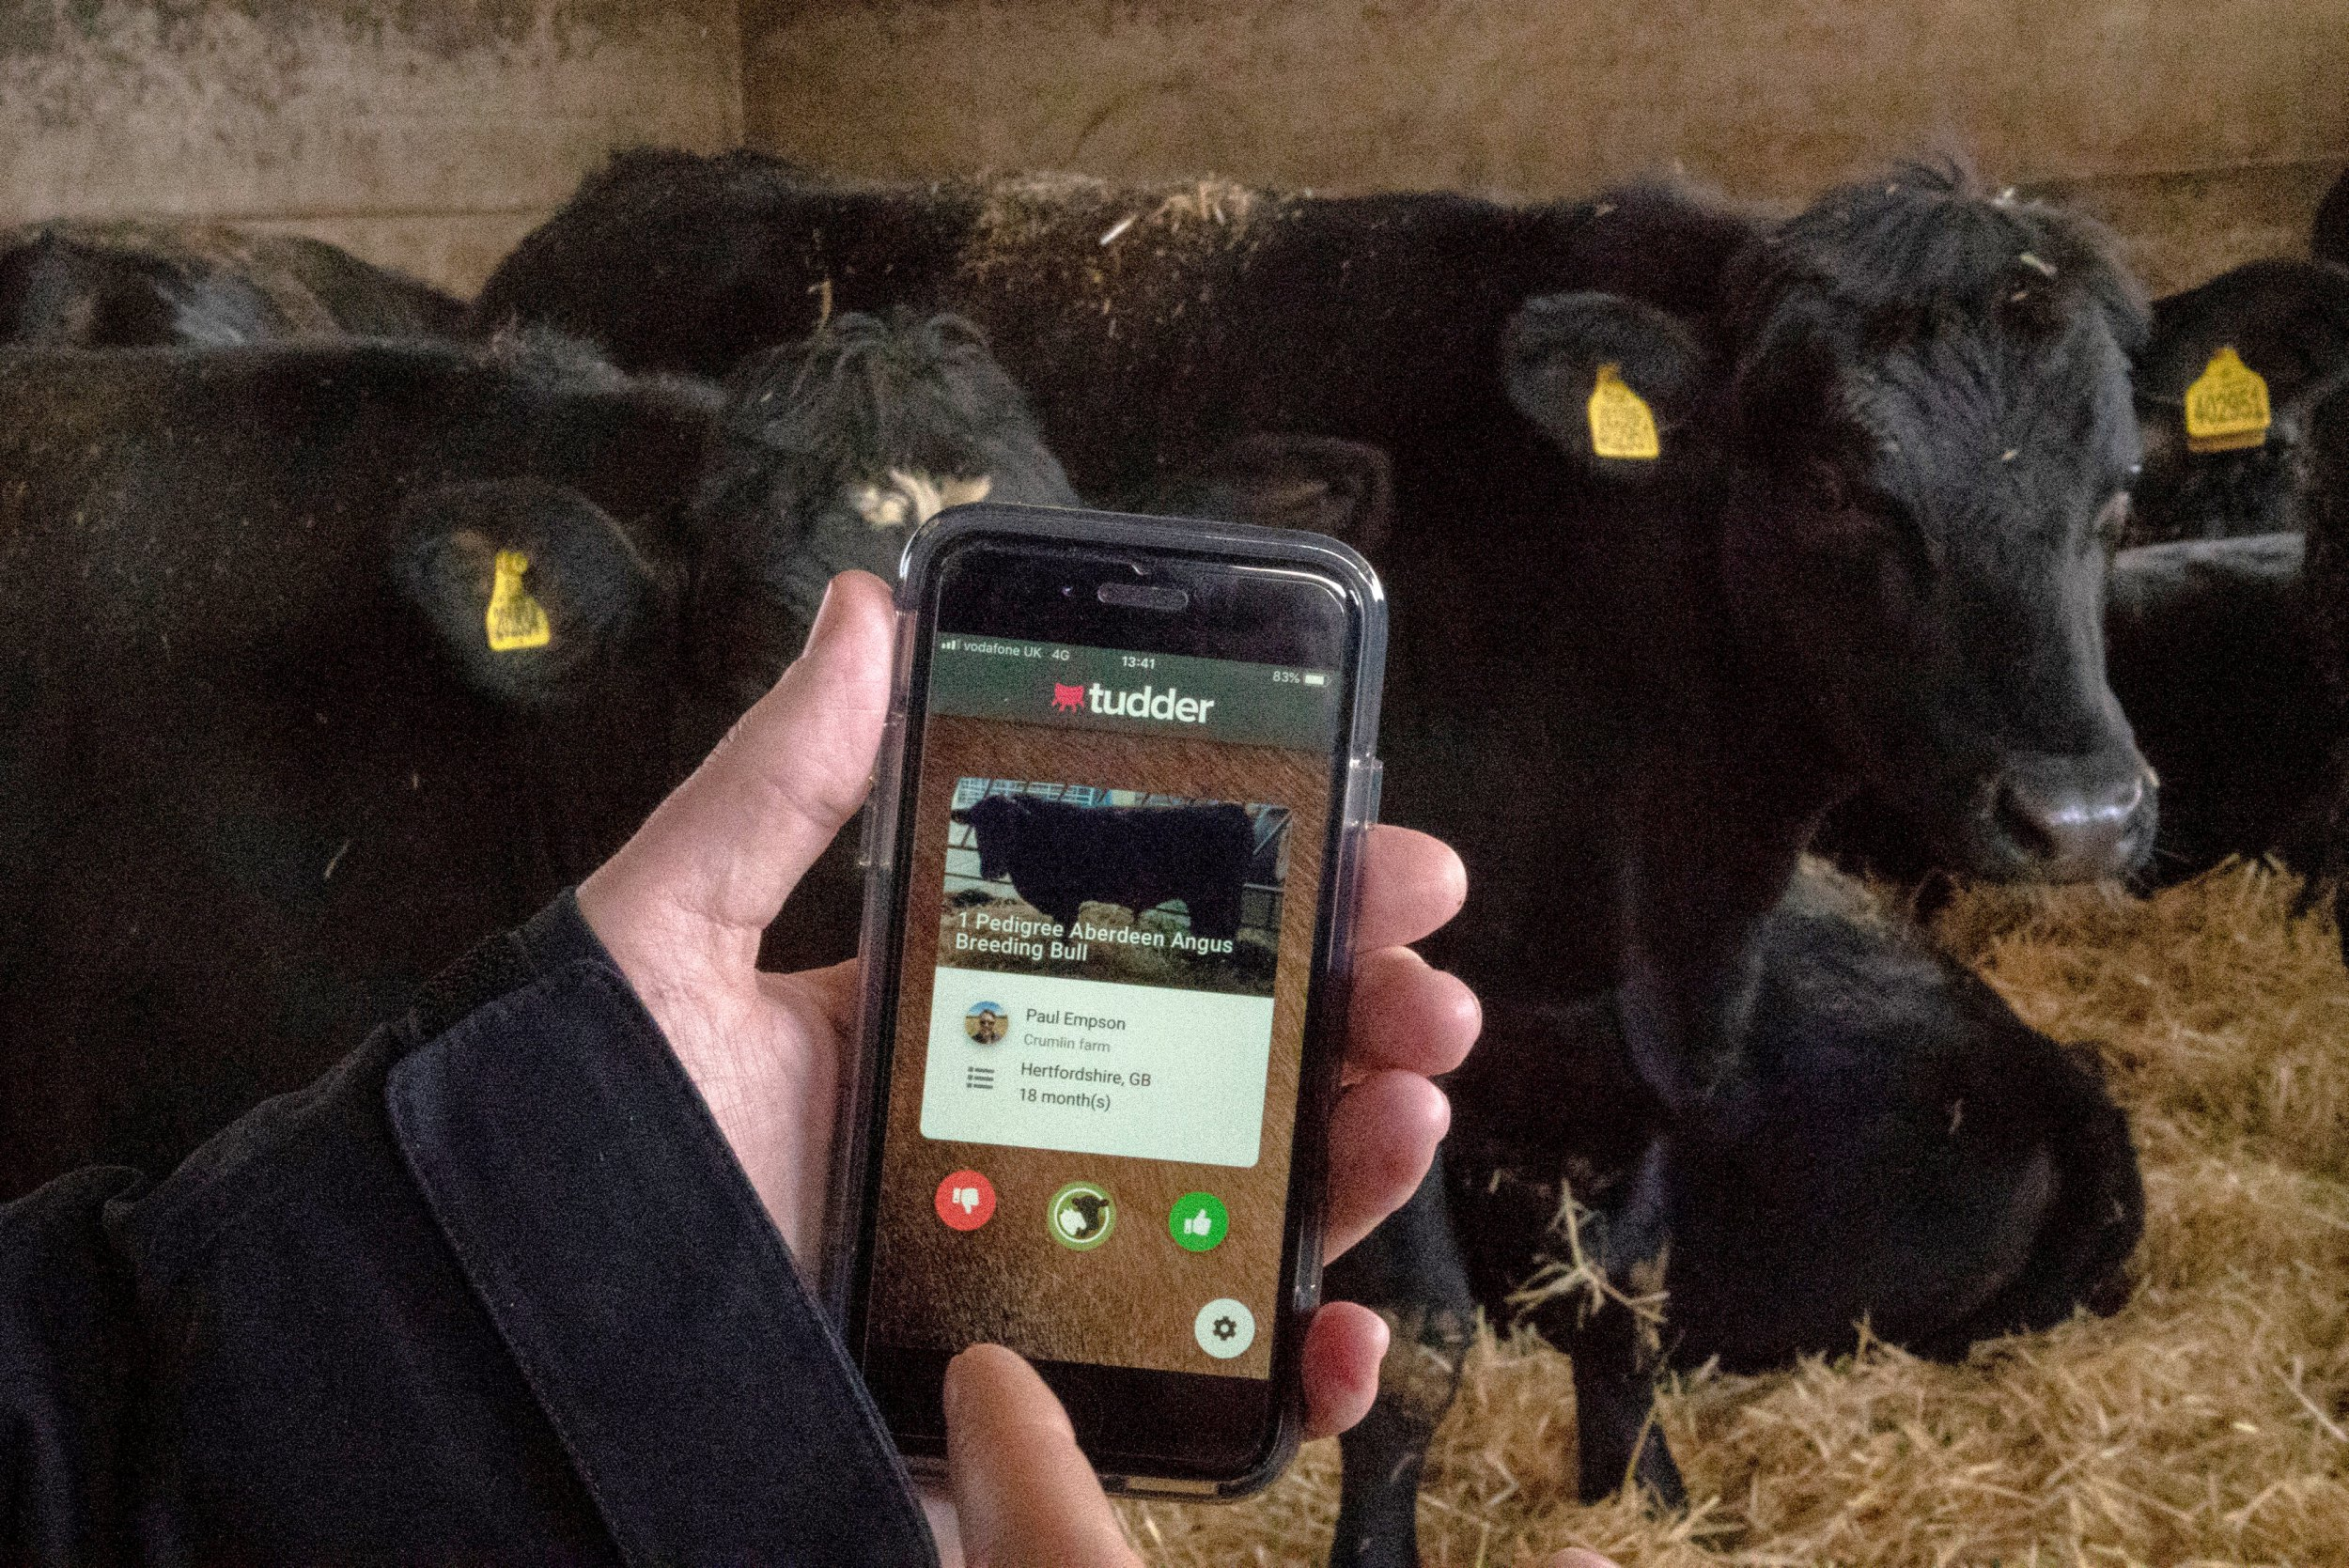 There's a Tinder for cows looking for love this Valentine's Day